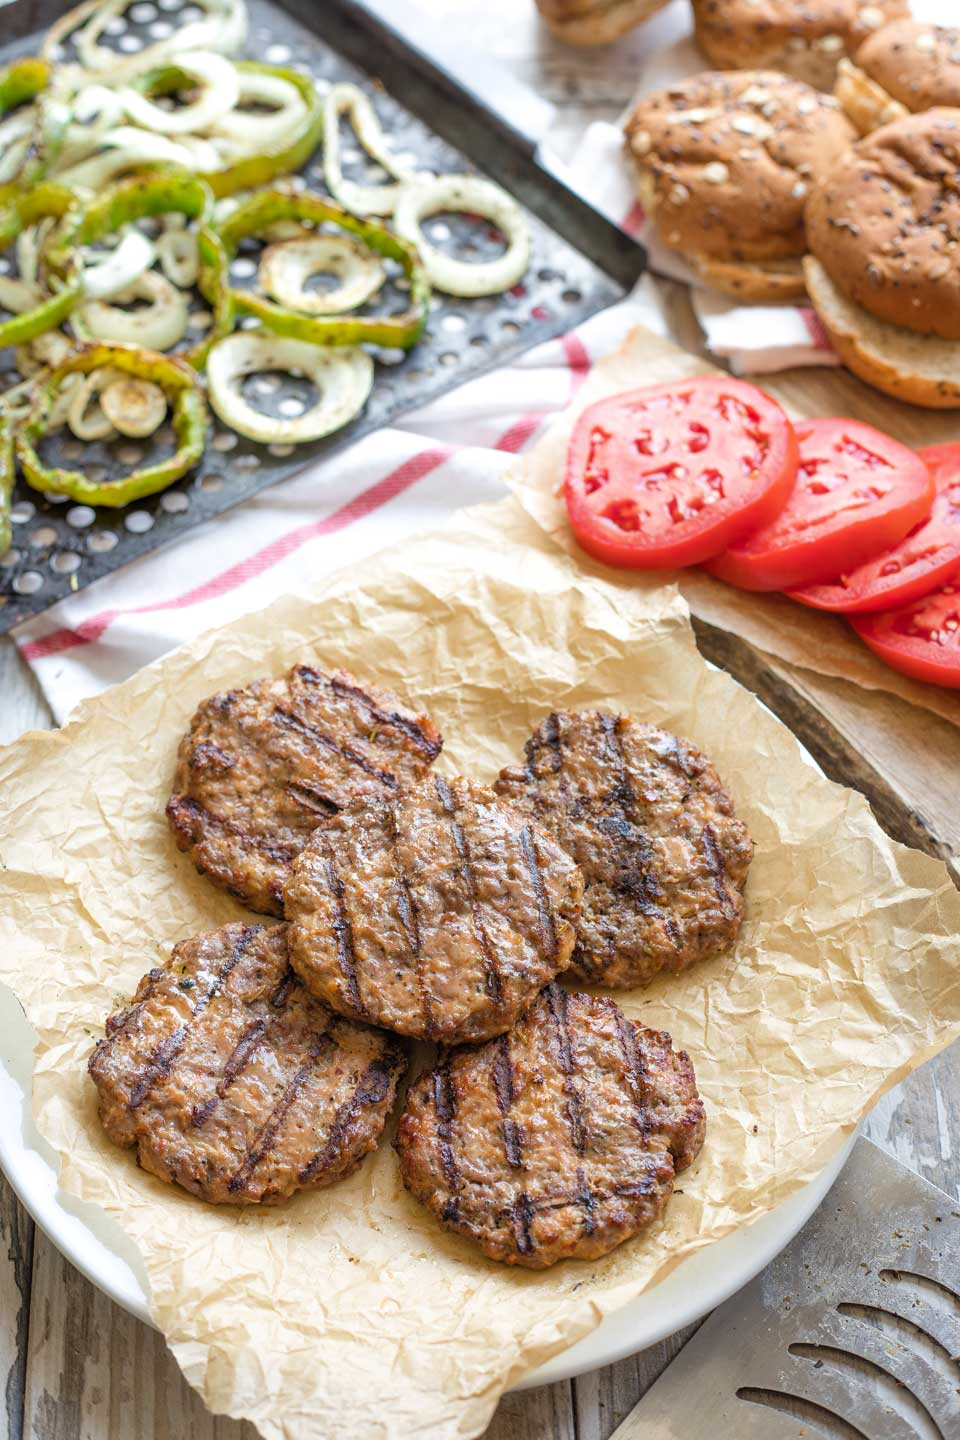 Five grilled hamburgers stacked on a plate with buns and Italian veggie toppings nearby.